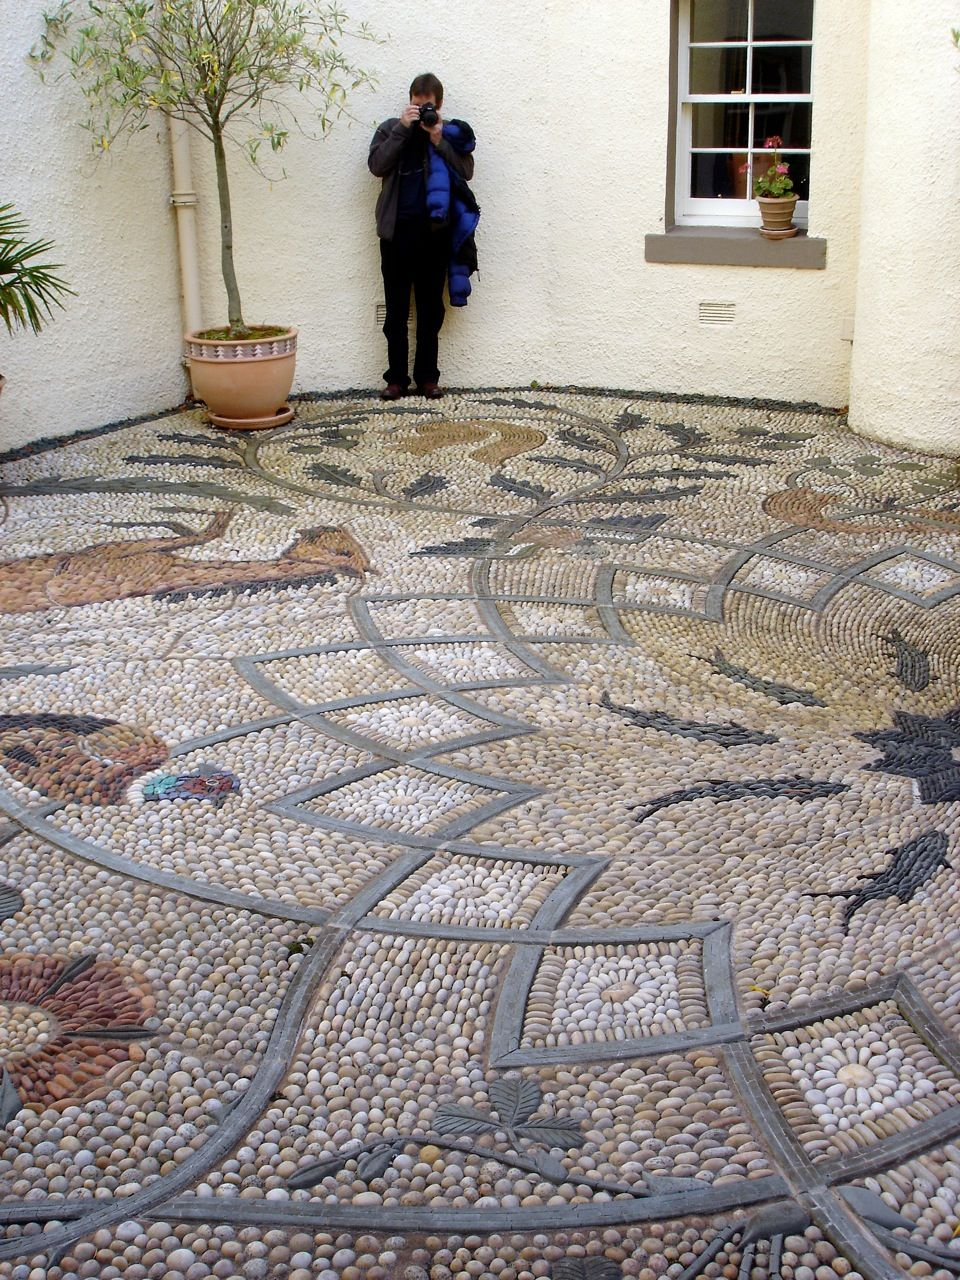 Sassi Piastrelle Ravenna Ward S Island Community Pebble Mosaic Project News From England